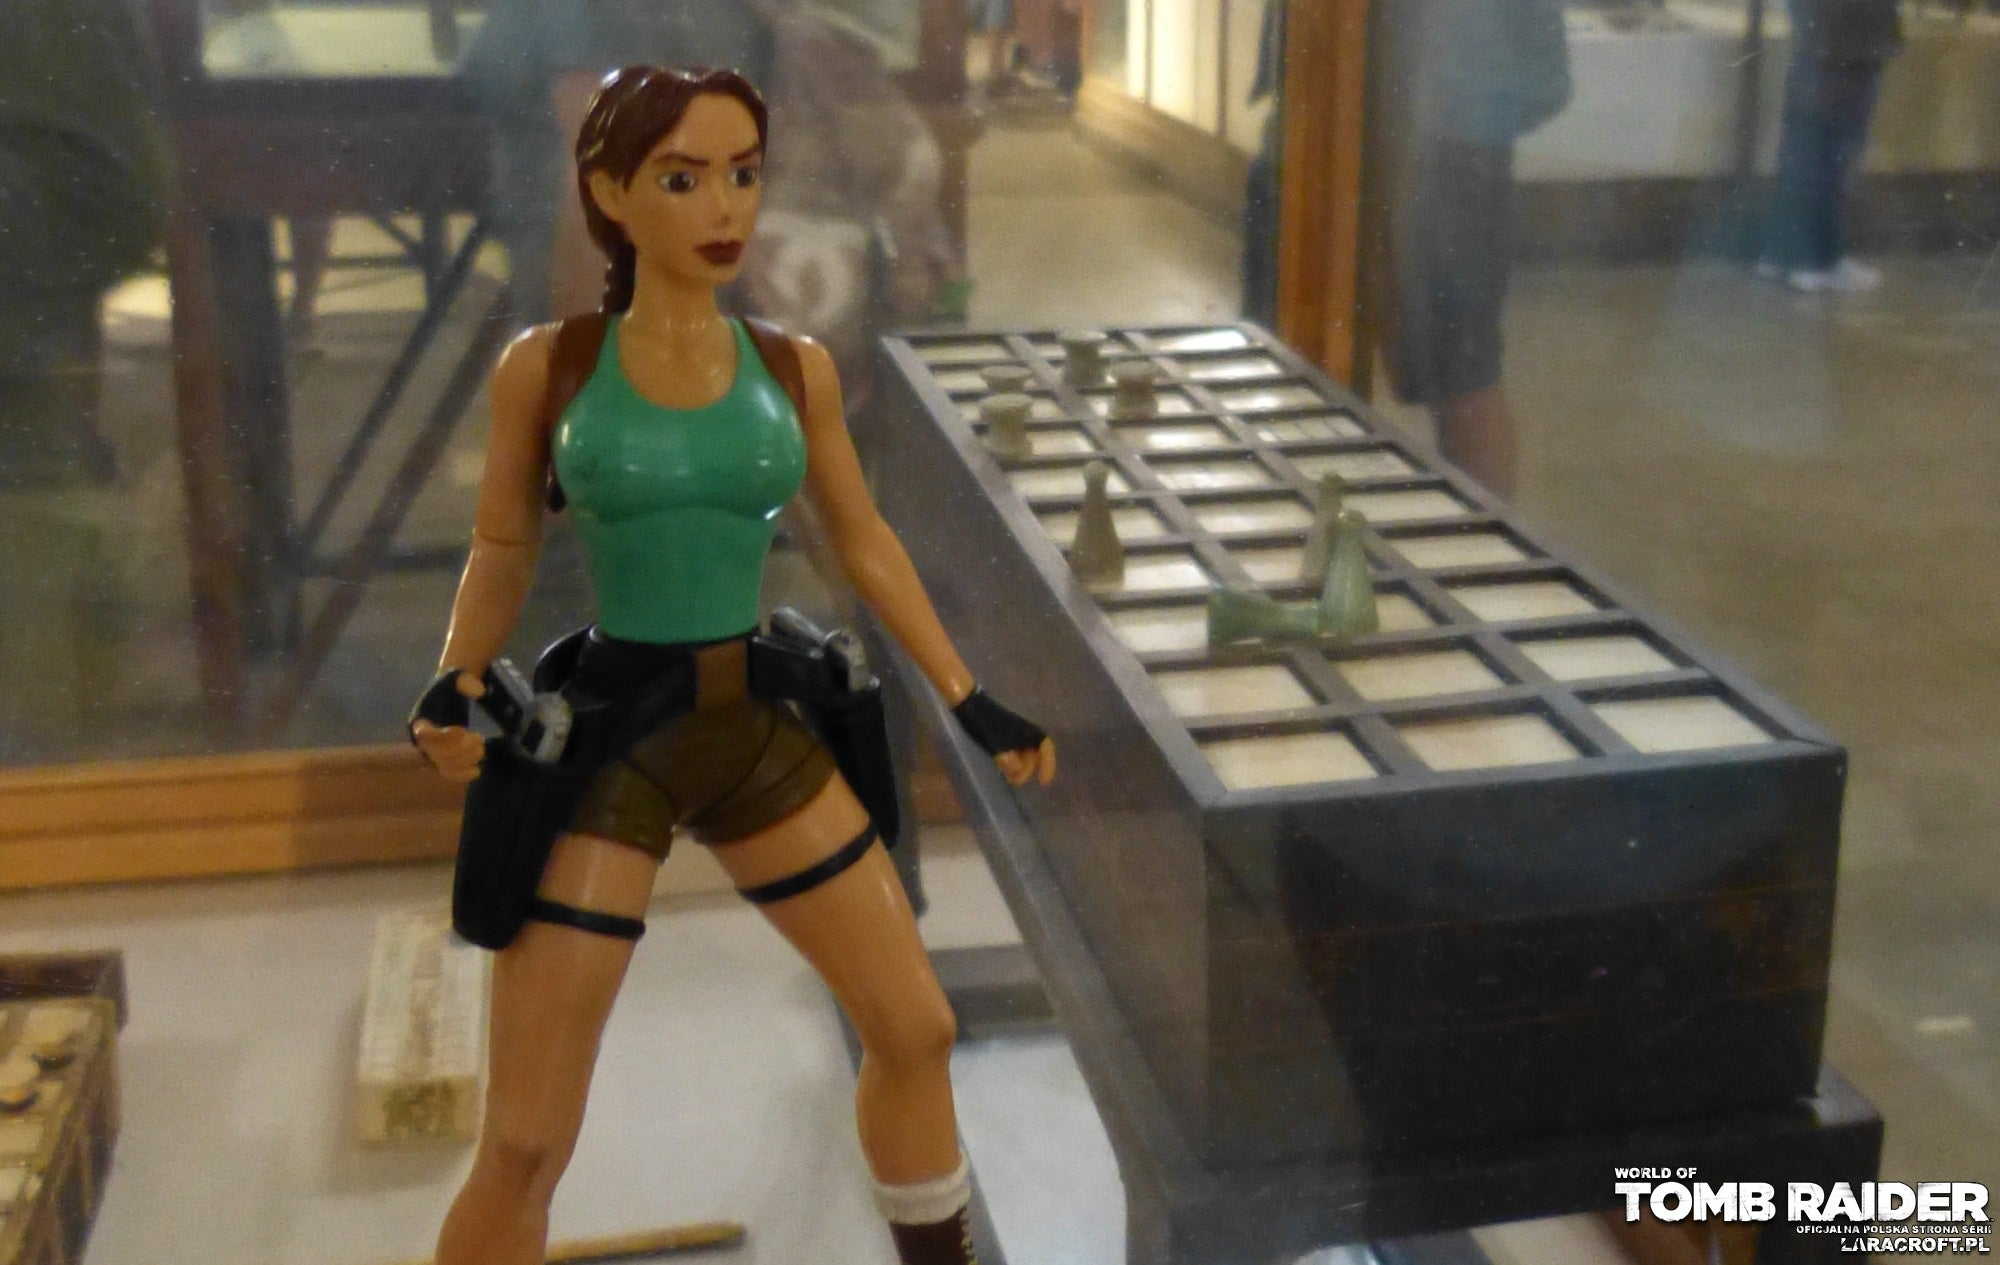 A photograph of a Lara Croft figure in front of a Senet game board in the great museum in Egypt